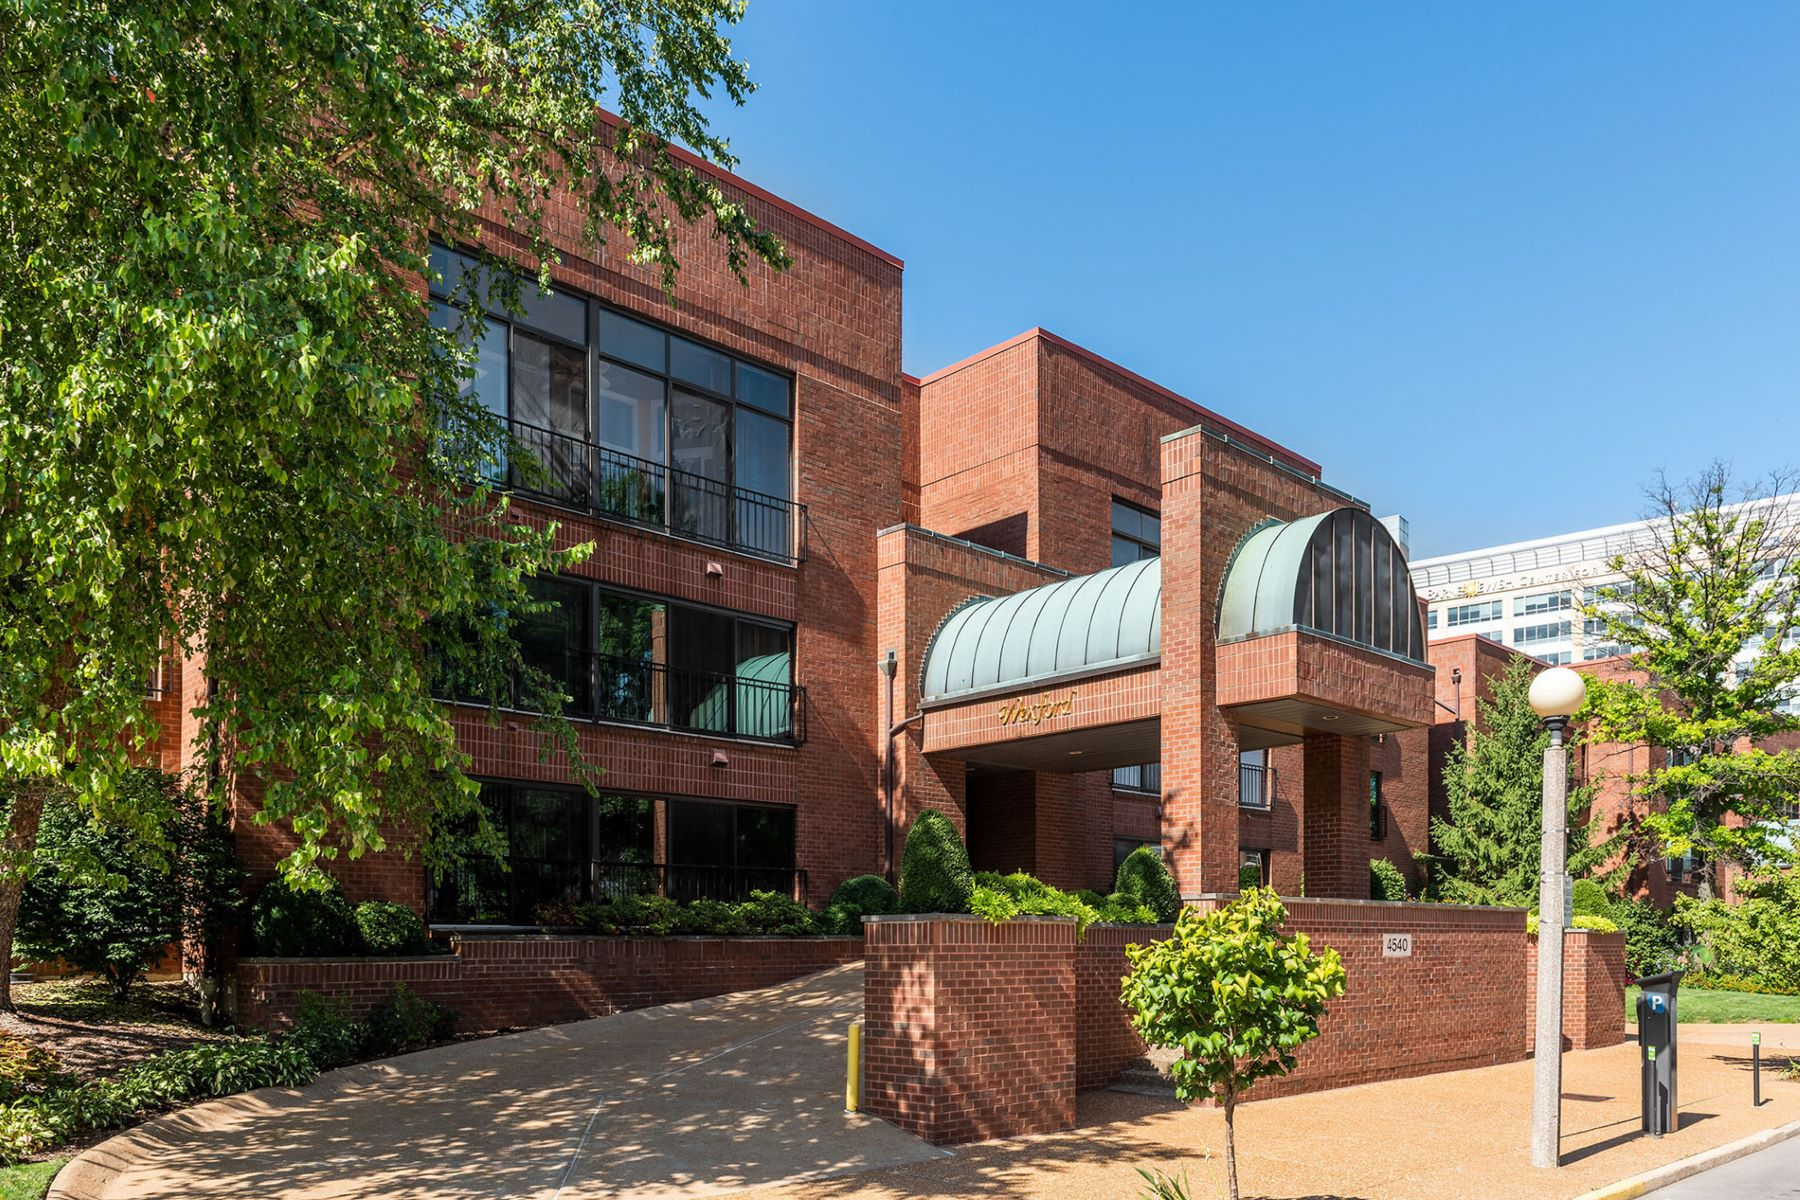 Condominium for Sale at Laclede Ave 4540 Laclede Ave # 107 St. Louis, Missouri 63108 United States